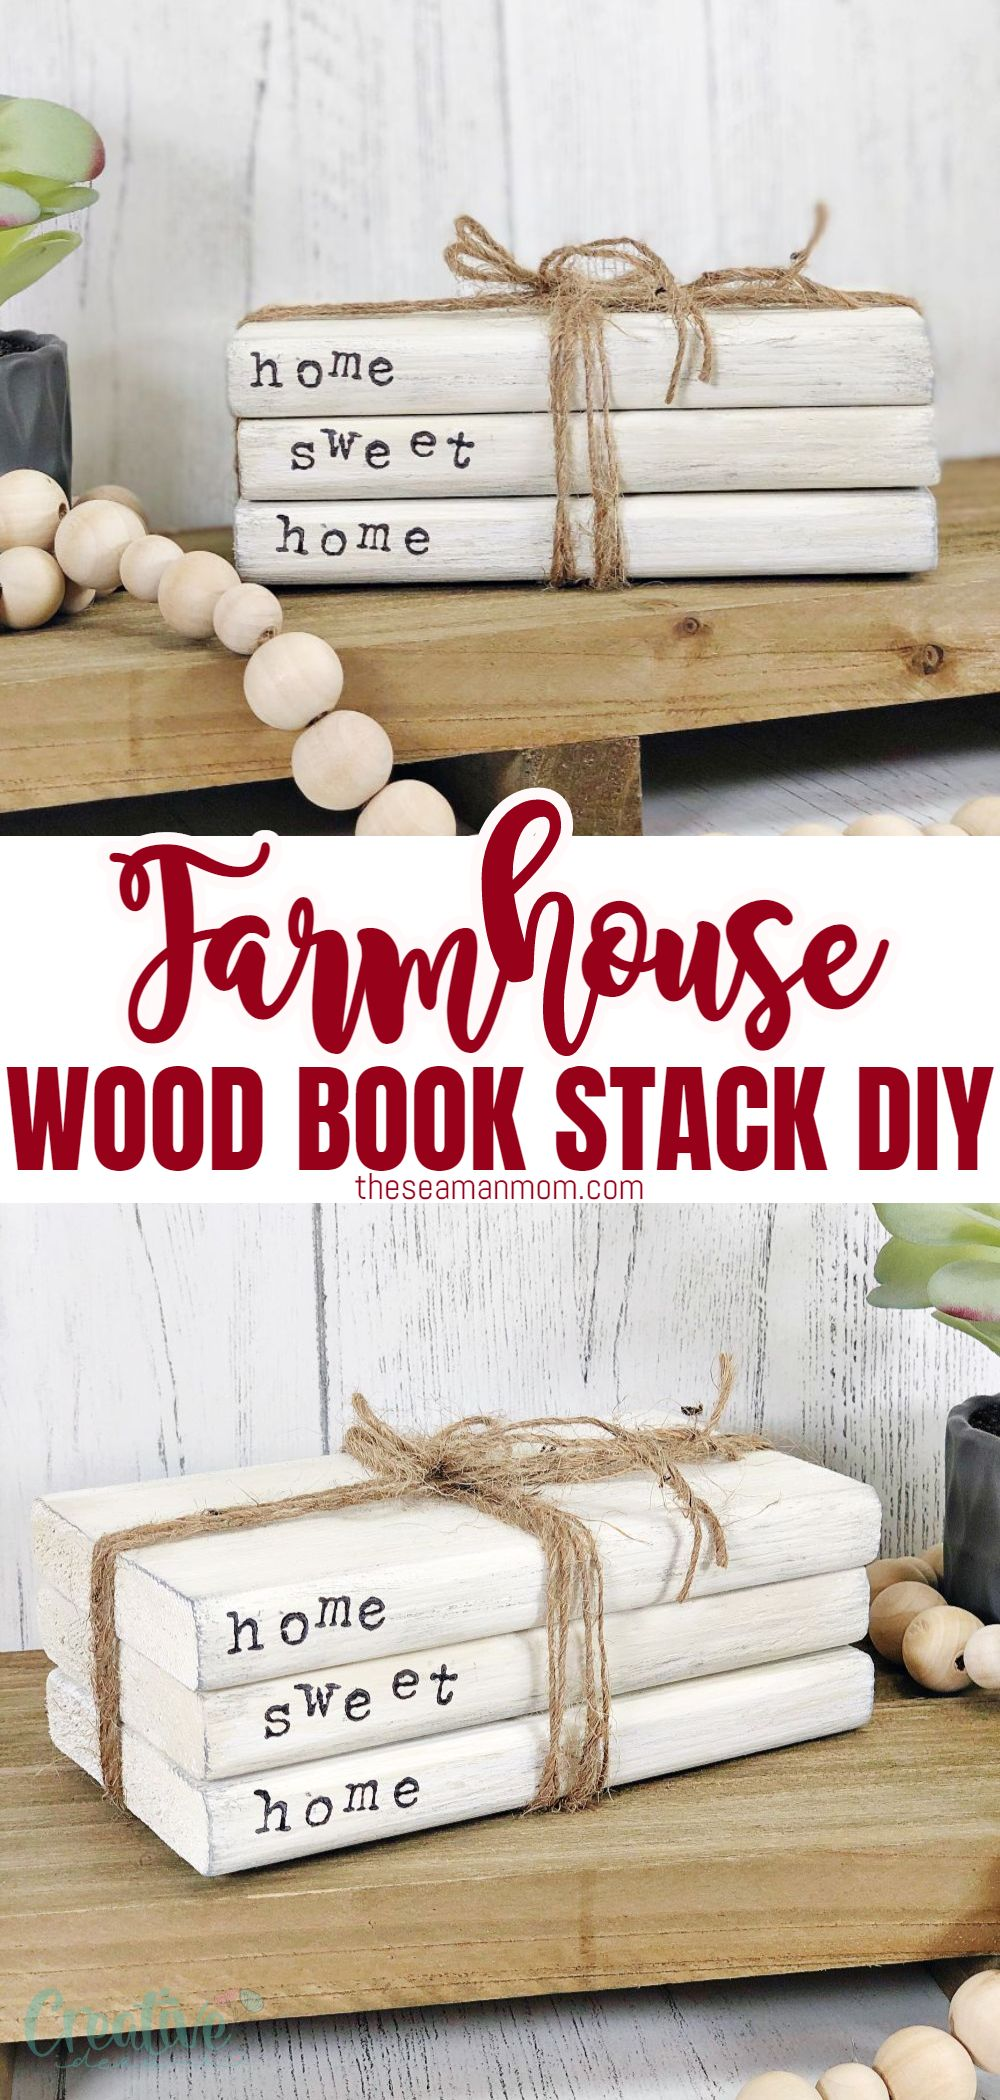 Do you love the look of a mini stack of books on your coffee table? Create an easy DIY farmhouse book stack using scrap paper, glue, and paint. This craft is perfect for kids who want to learn how to make something with their hands or just as a quick way to spruce up your living space! via @petroneagu